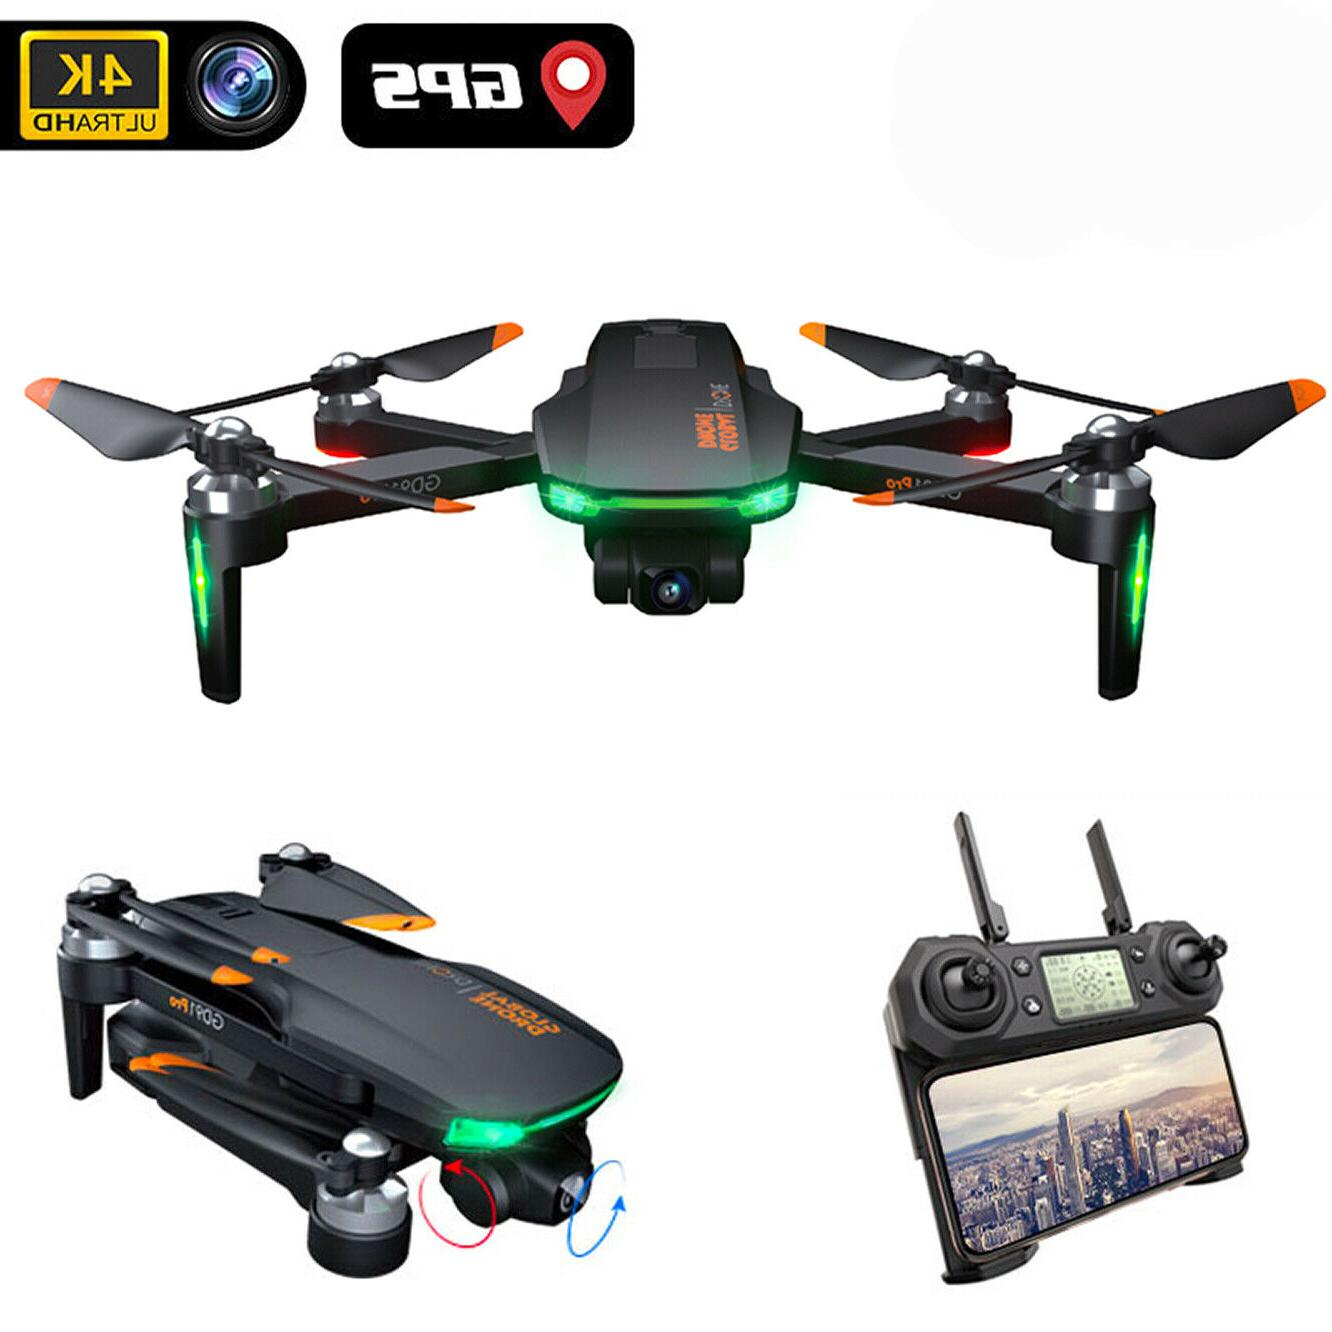 drone 4k gd91 pro with 2 axis